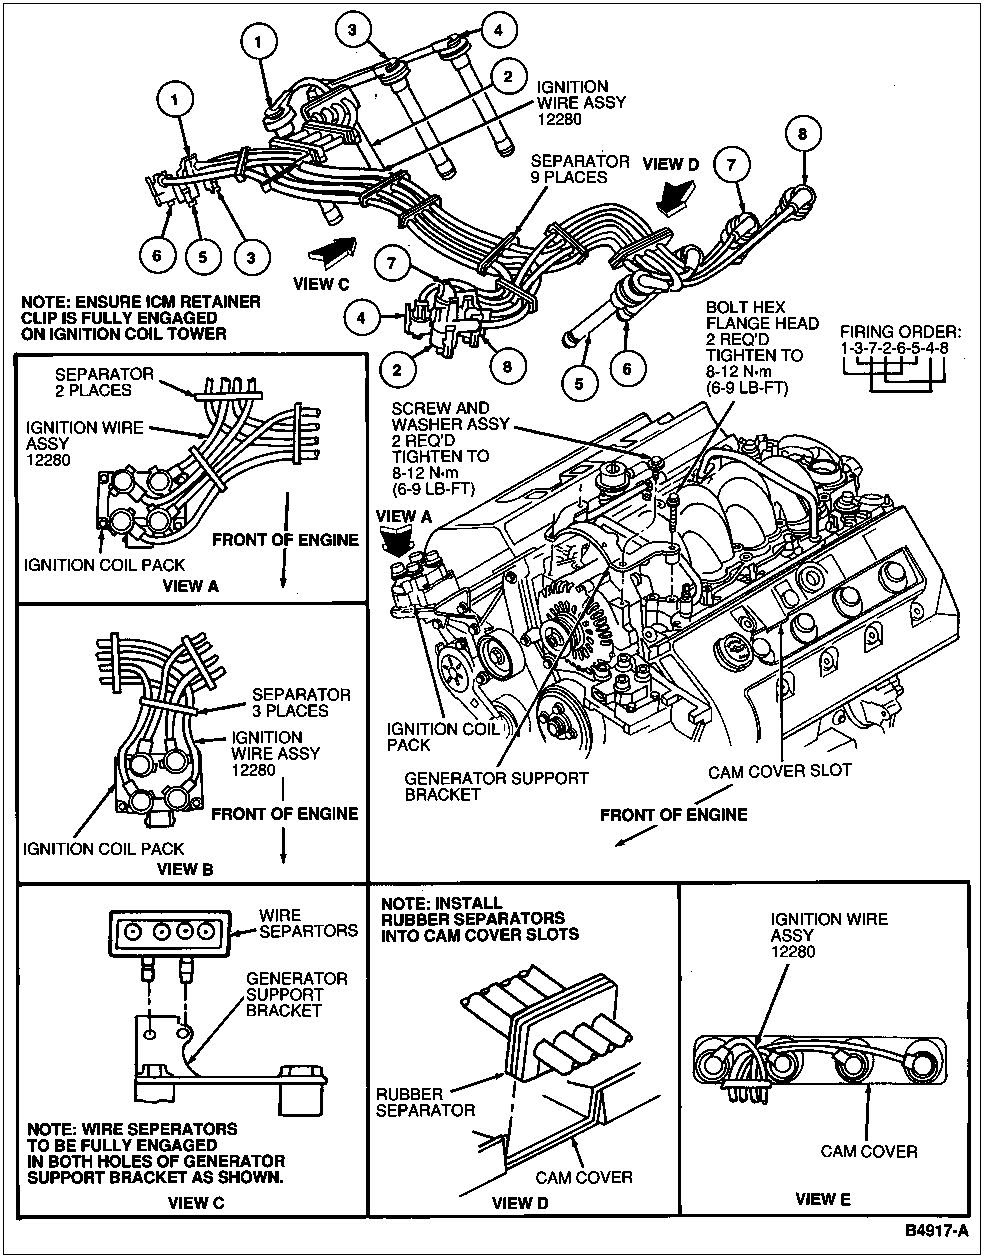 1993 Lincoln Town Car Engine Diagram 25 Hp Mercury Outboard Wiring Diagram Yamaha Phazer Tukune Jeanjaures37 Fr